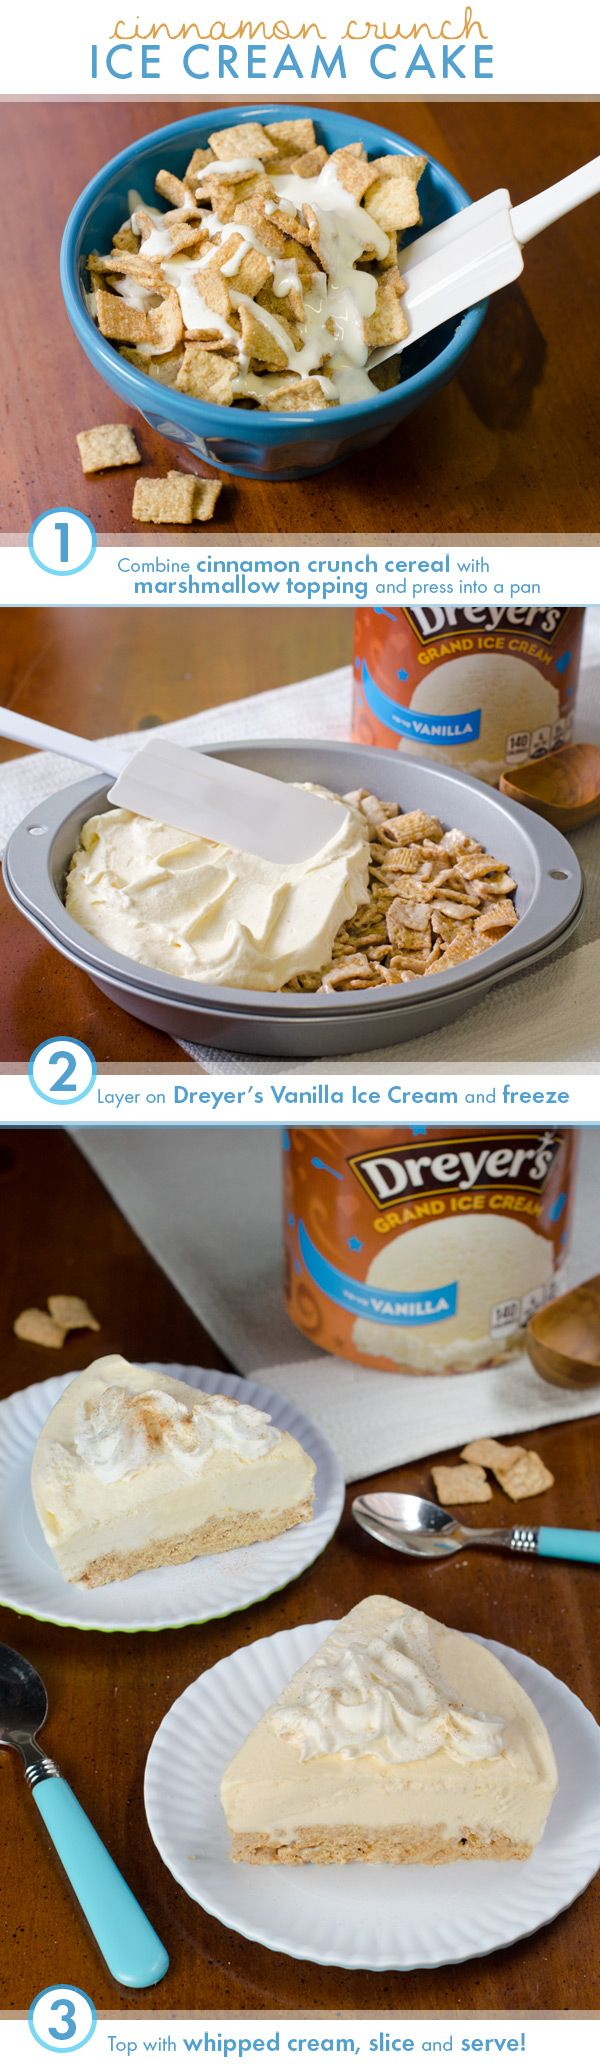 This simple no-bake cake brings together two of your favorite childhood flavors: cinnamon crunch cereal and ice cream! Just mix together the cereal and marshmallow topping in a bowl and press into a pan until halfway full. Add a thick layer of vanilla ice cream, and top with a dollop of whipped cream and a sprinkle of cinnamon!